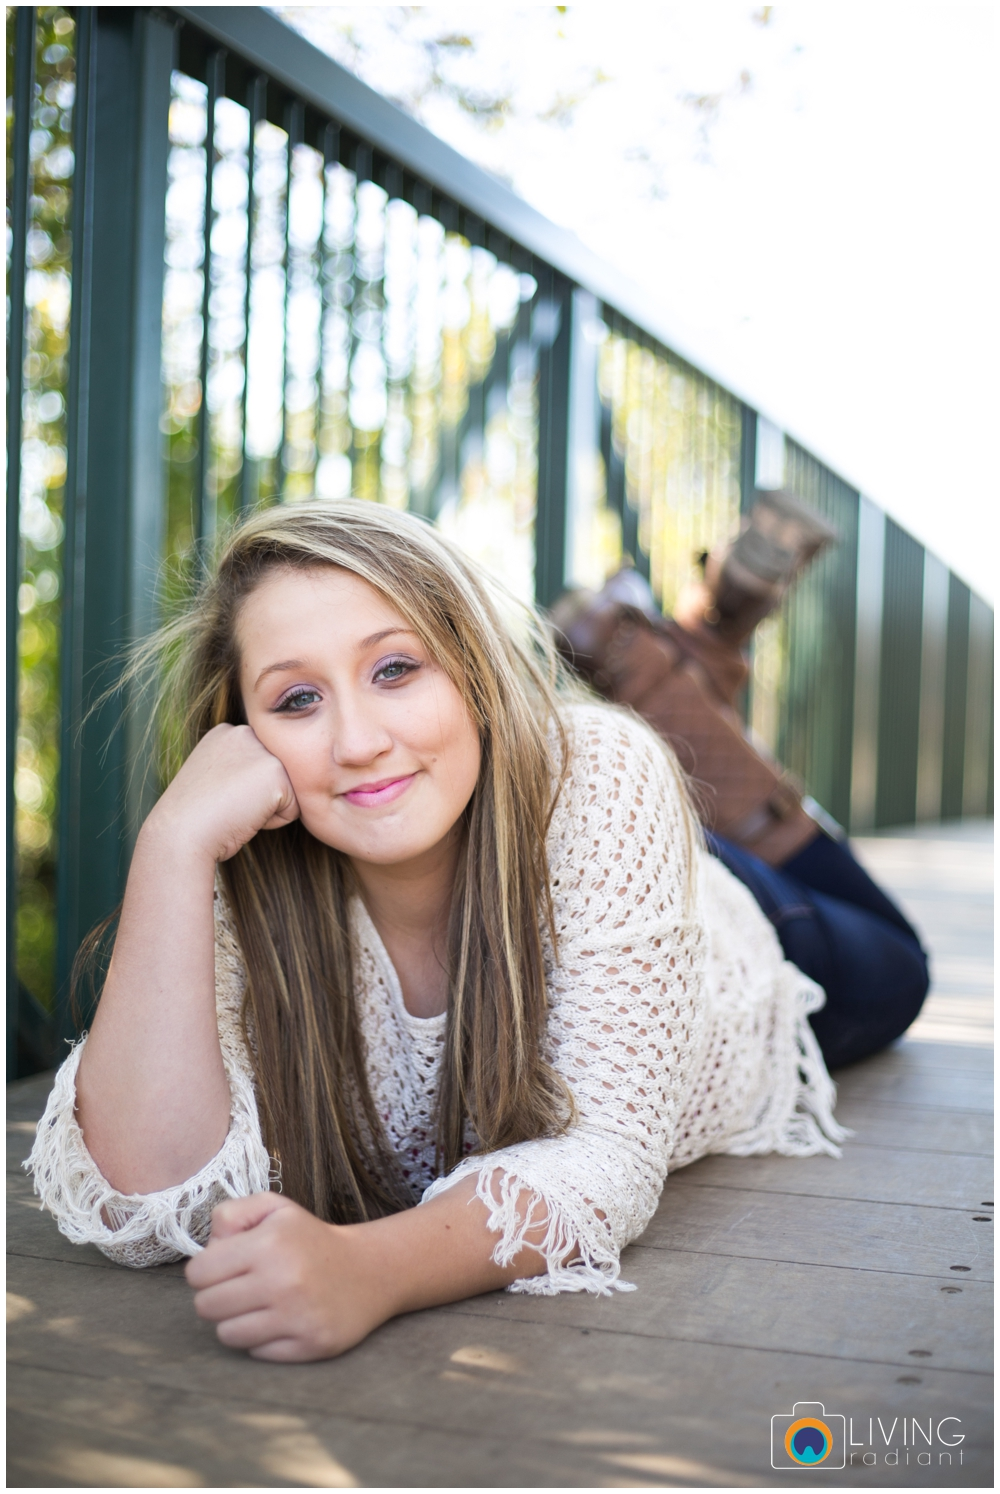 grace-nale-senior-portraits-outdoor-fall-living-radiant-photography-stomped_0012.jpg